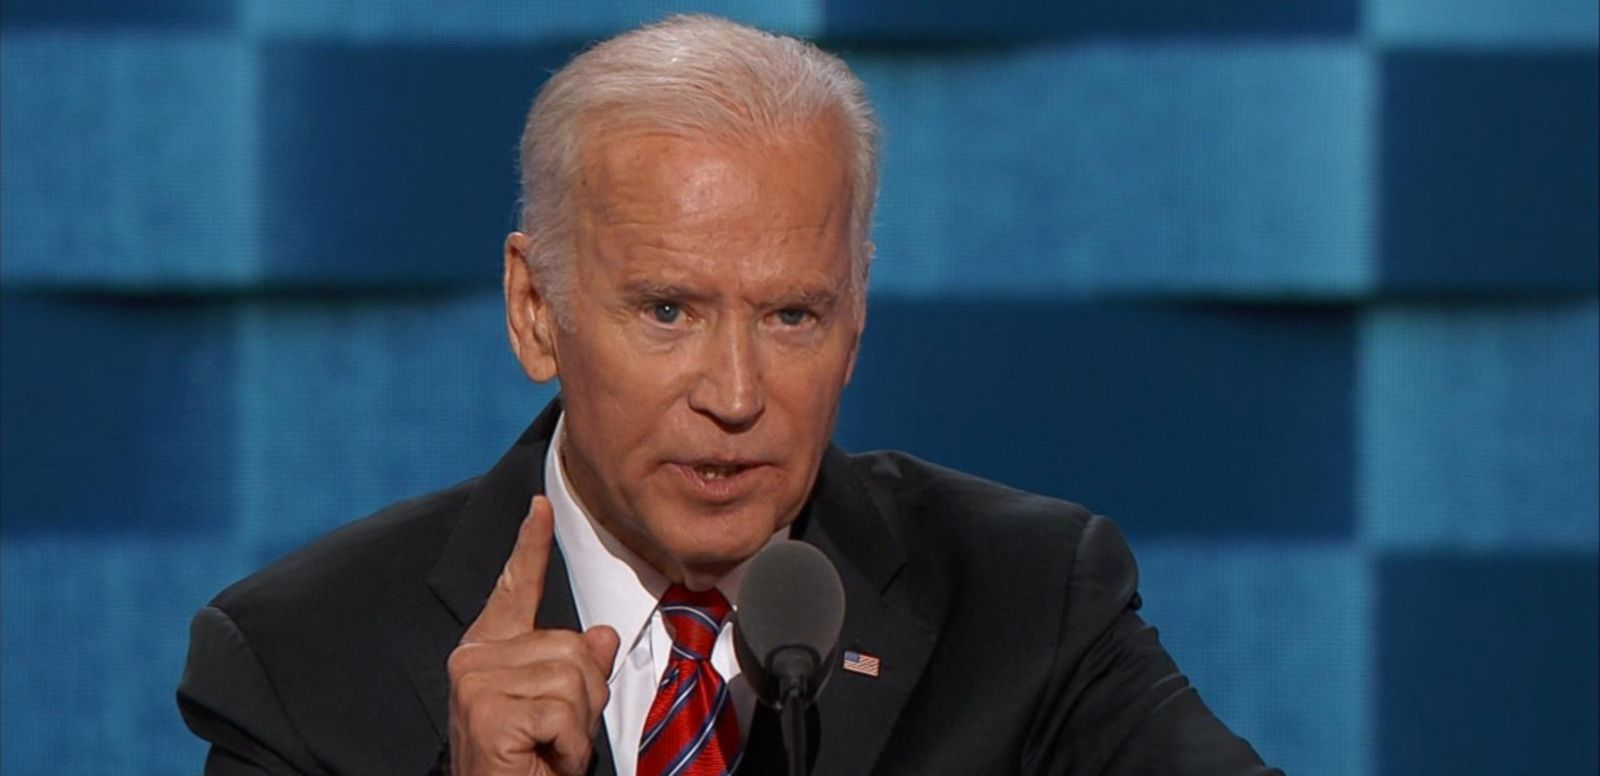 Biden assailed what he called Trump's lack of preparedness.